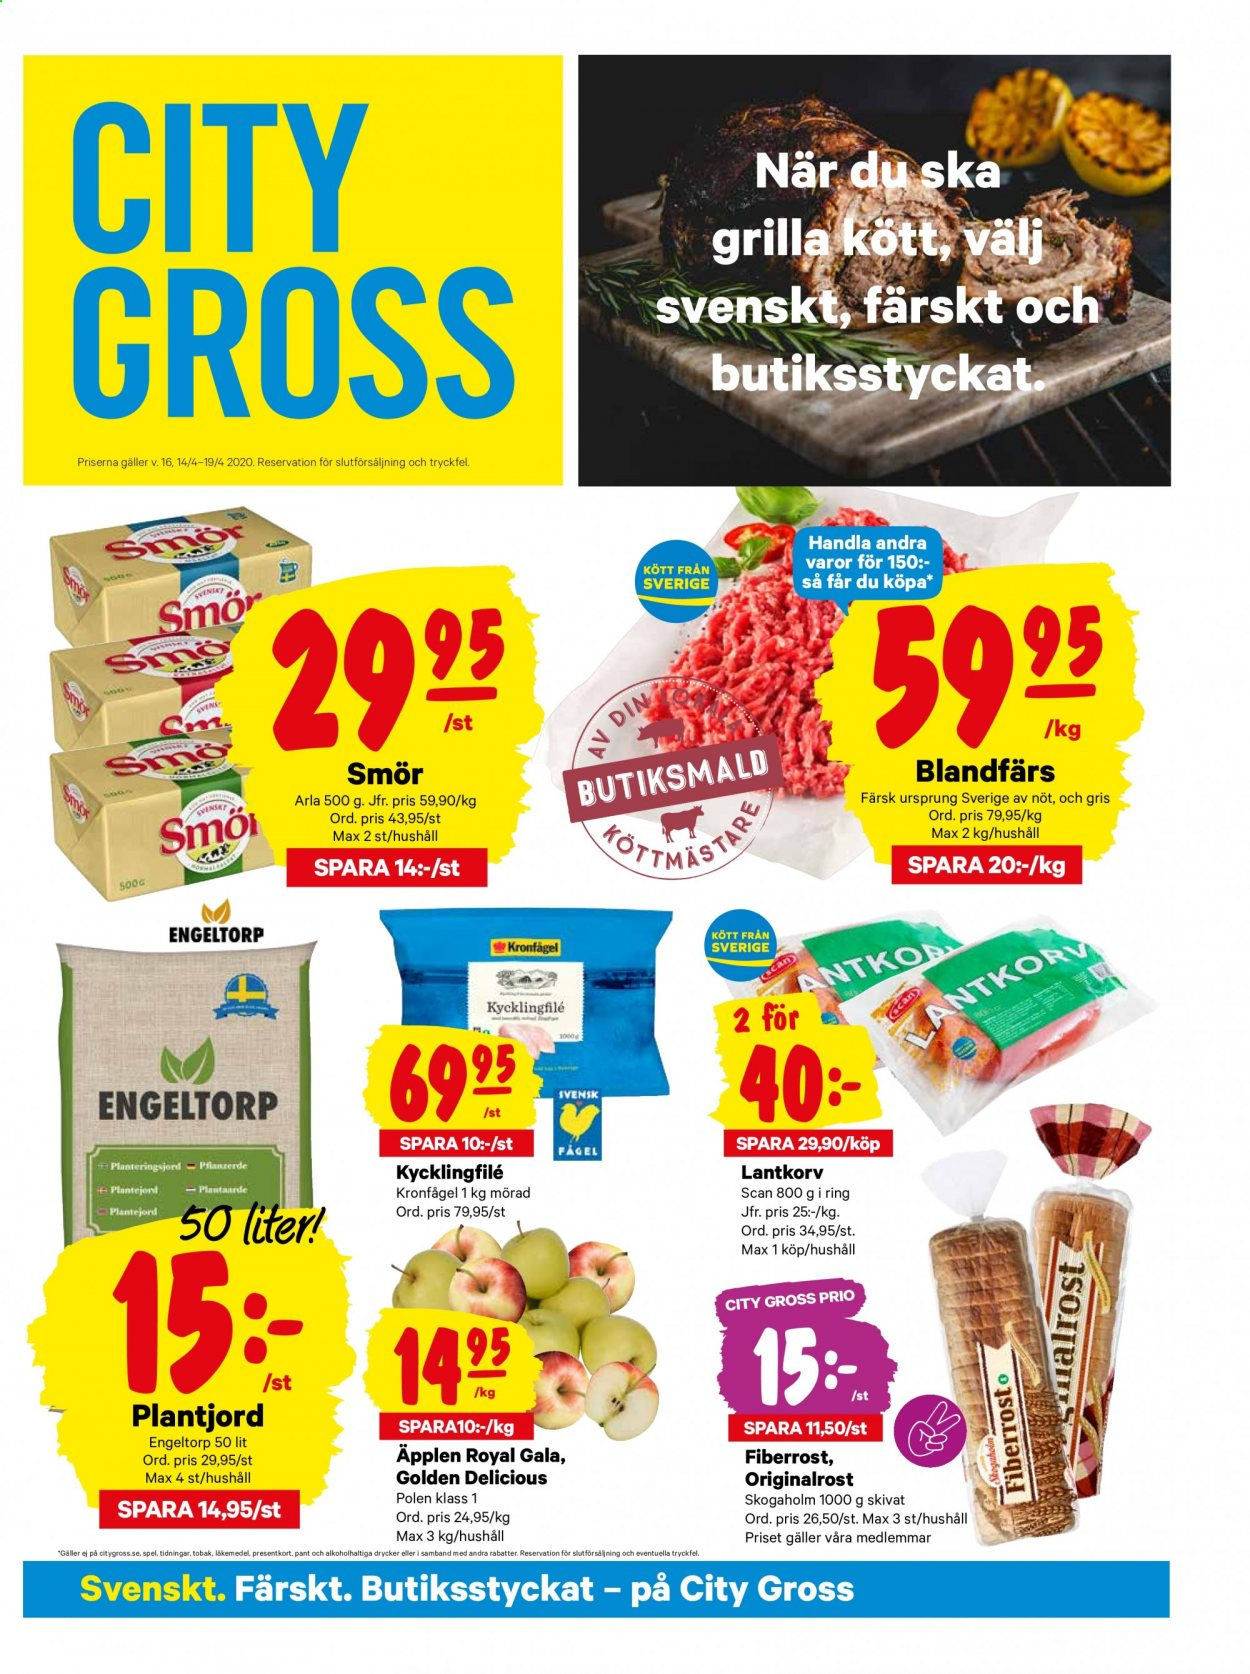 City Gross reklamblad - 14/4 2020 - 19/4 2020. Sida 1.